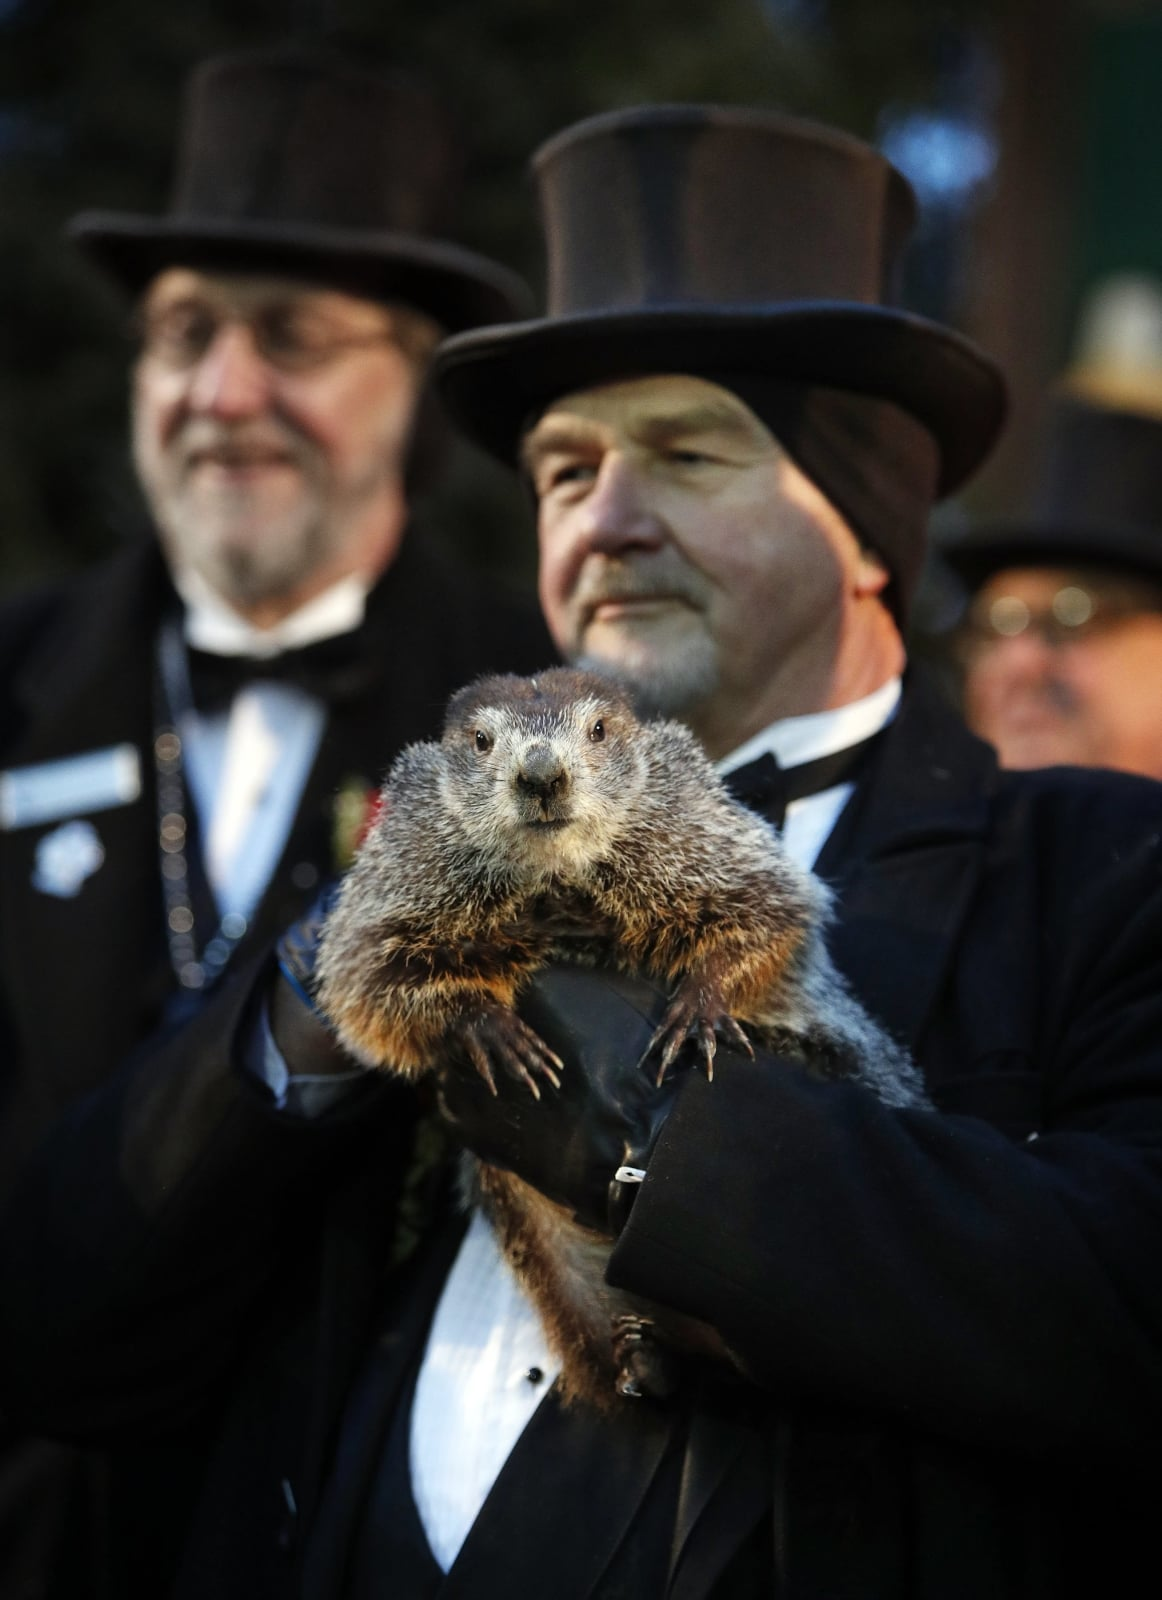 epa06492180 Groundhog Club co-handler John Grifiths holds Punsxutawney Phil the weather prognosticating groundhog during the Groundhog Day celebration at Gobblers Knob in Punxsutawney, Pennsylvania, USA, 02 February 2018. Phil saw his shadow and predicted six more weeks of winter.  EPA/DAVID MAXWELL Dostawca: PAP/EPA.